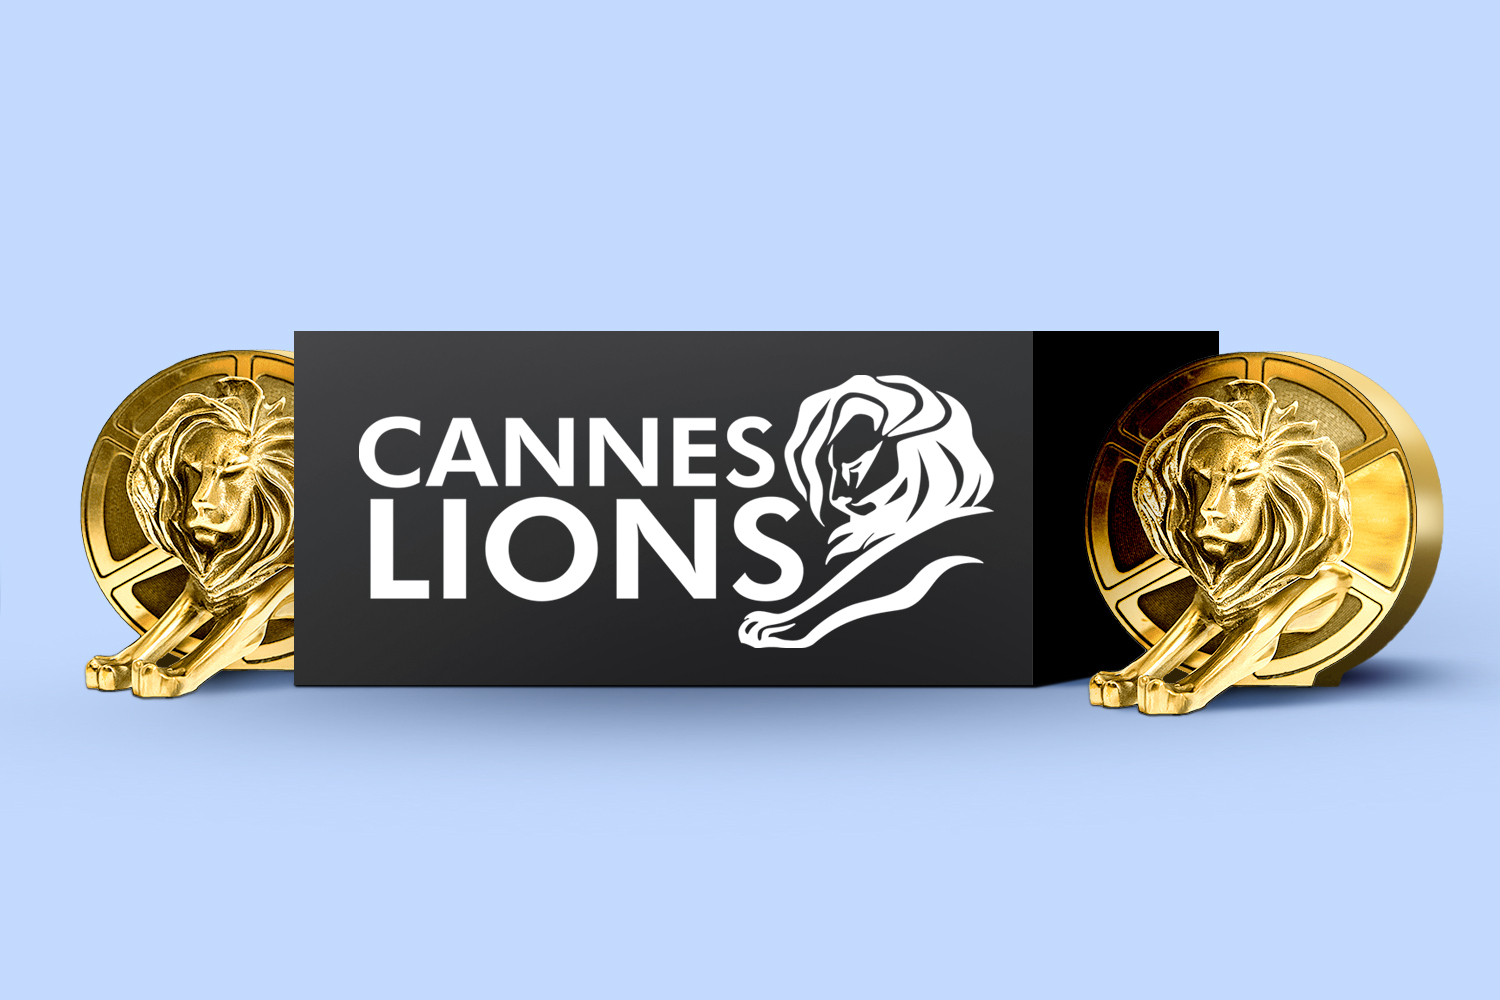 Cannes Lions' Enduring Trends of 2020: Super Fans, Hacking Production, and E-Commerce